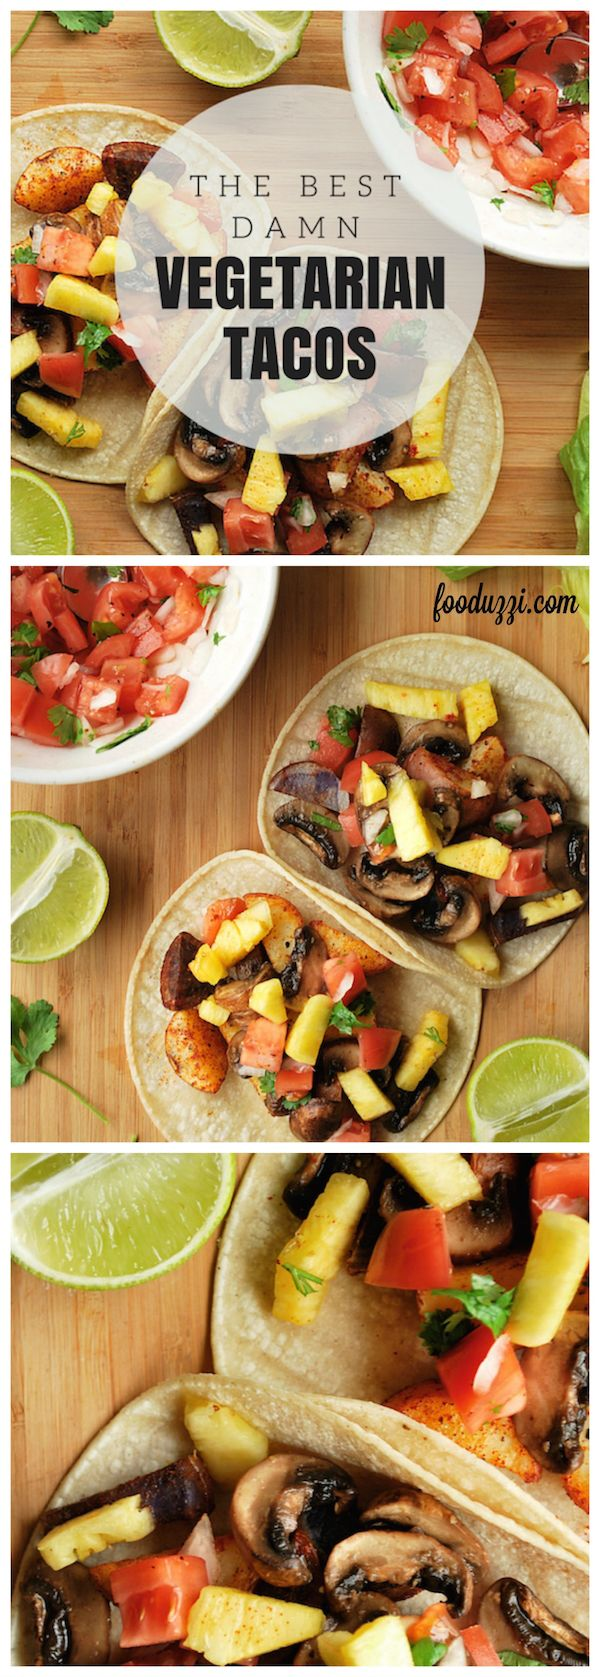 The Best Damn Vegetarian Tacos: 20 minutes stay between you and the best tacos of your life! gluten free + vegan || fooduzzi.com recipes